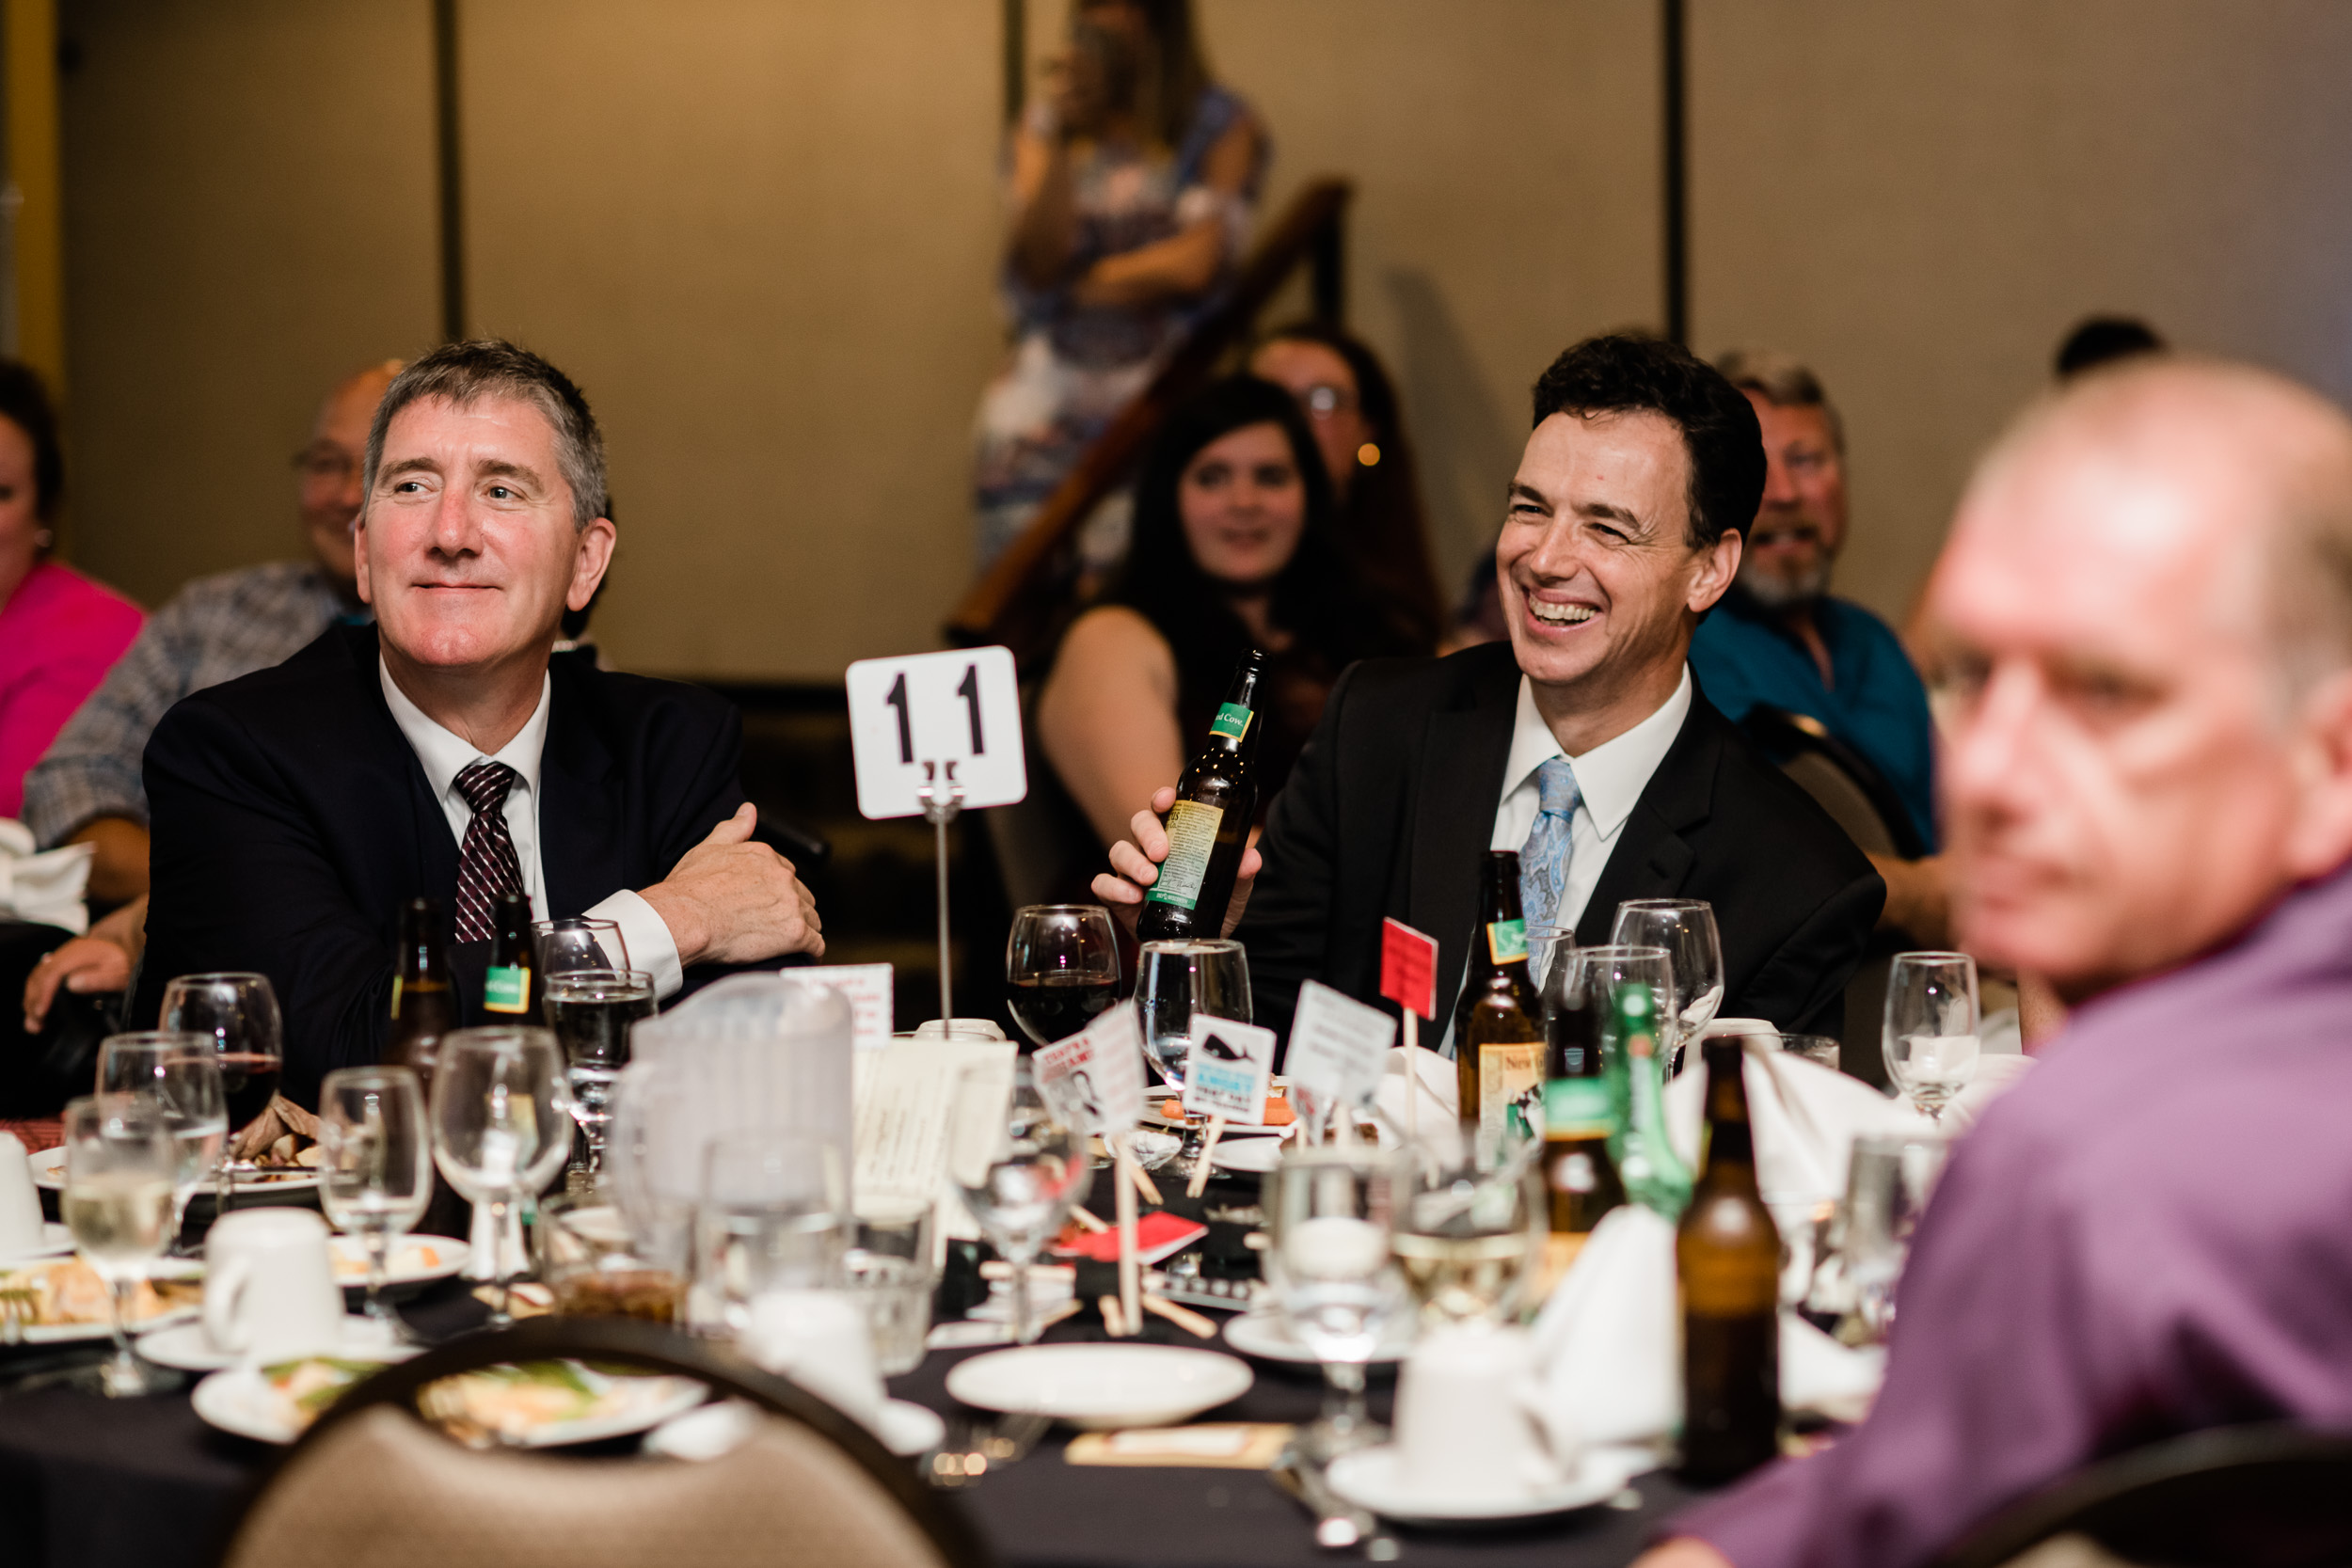 Wedding guests laughing during dinner